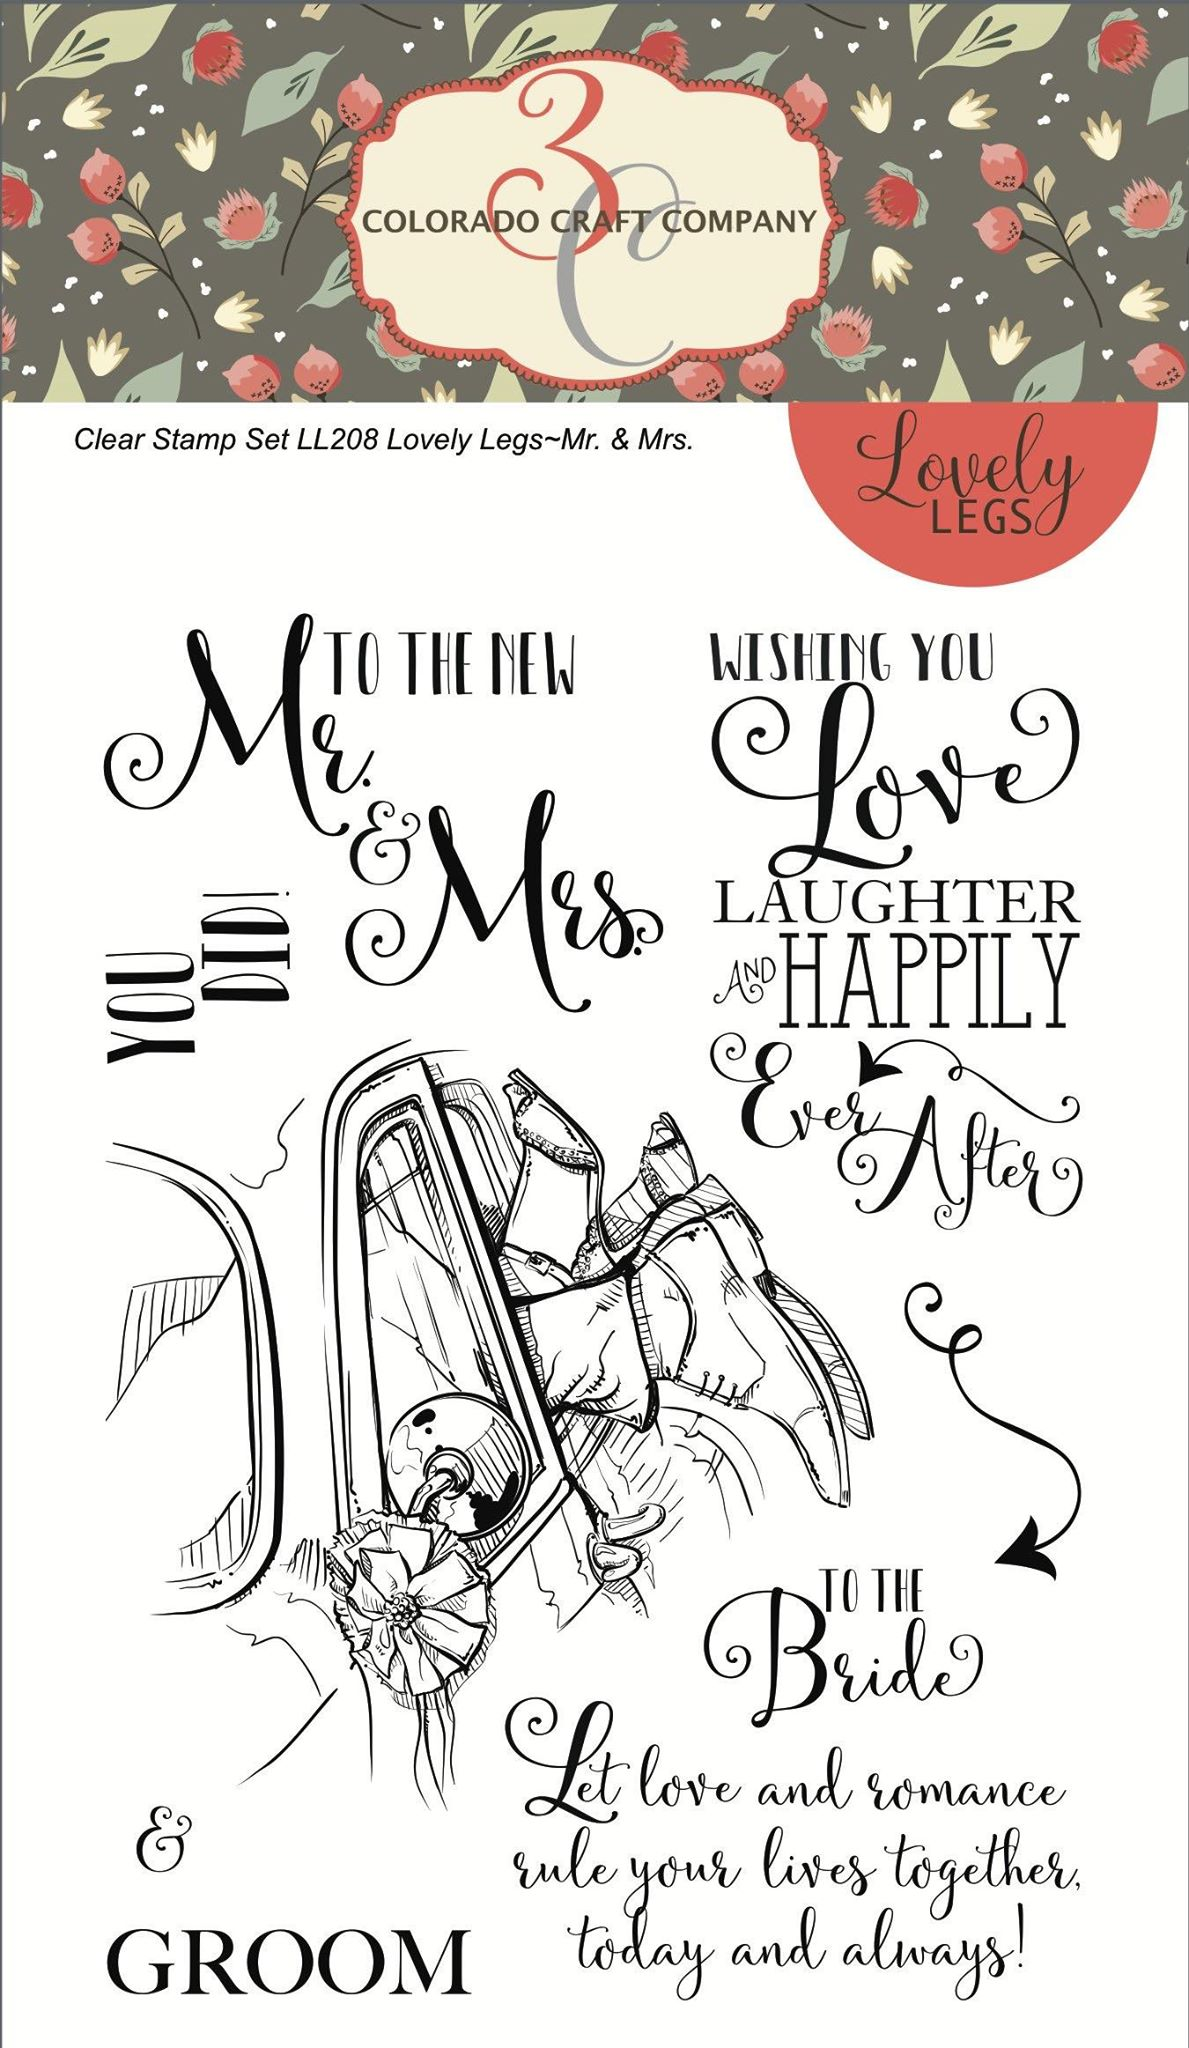 Colorado Craft Co. - Lovely Legs Mr. & Mrs. Stamp Set